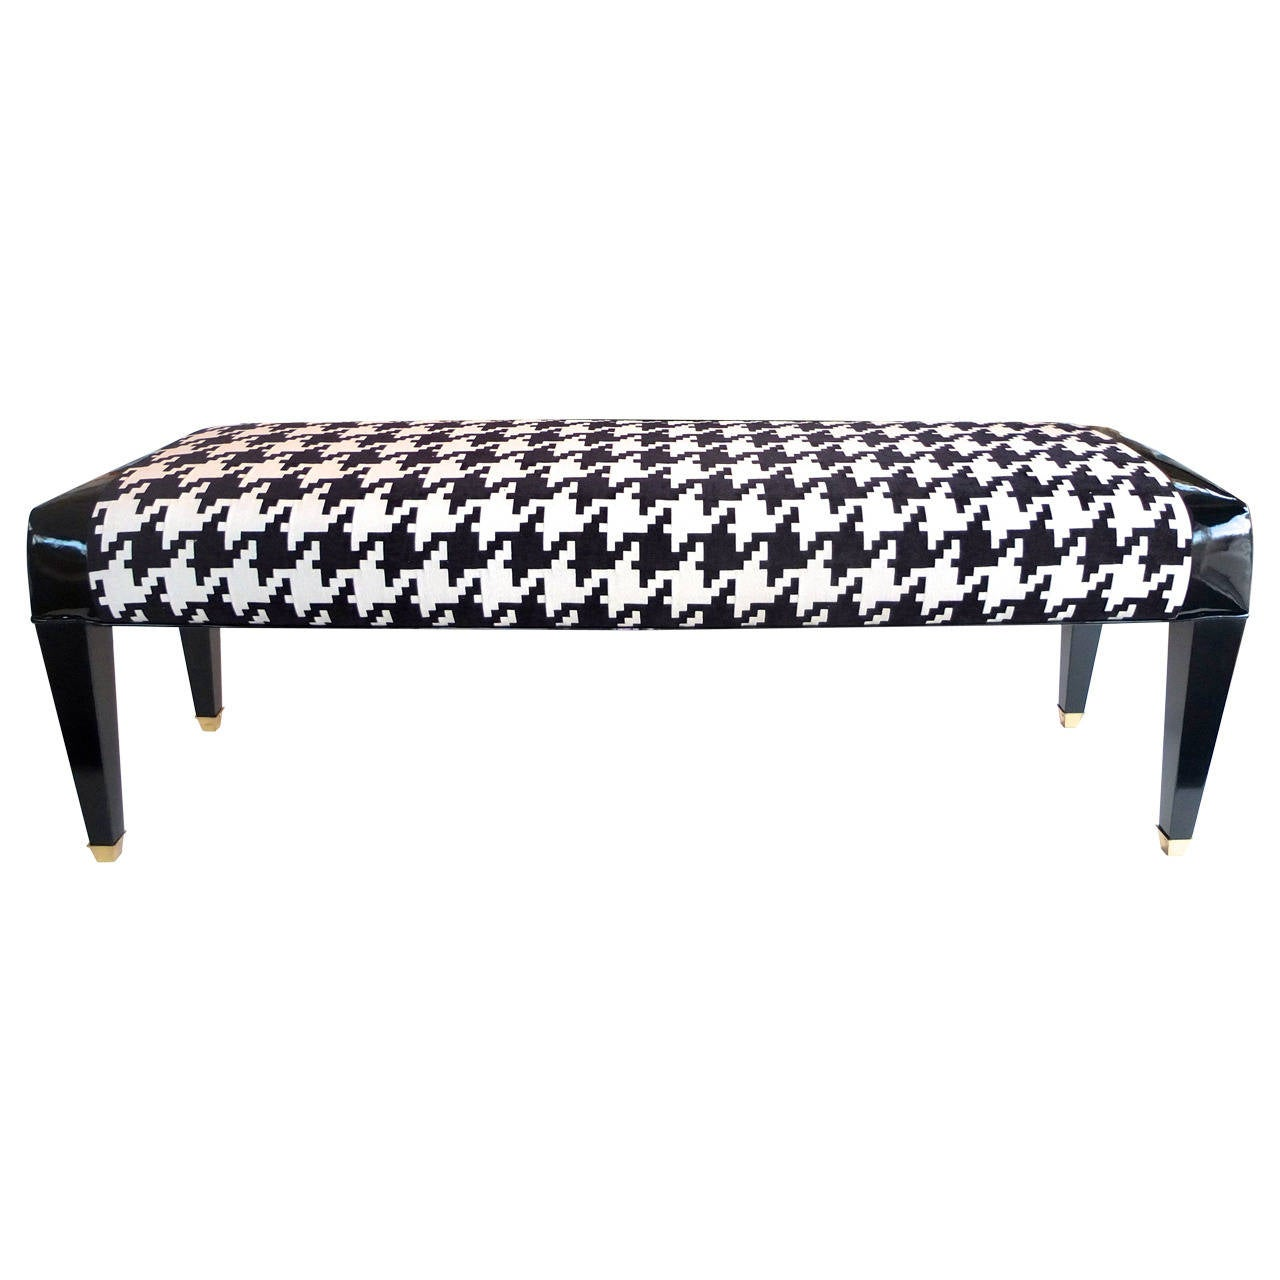 Upholstered modernist long bench for sale at 1stdibs Long upholstered bench